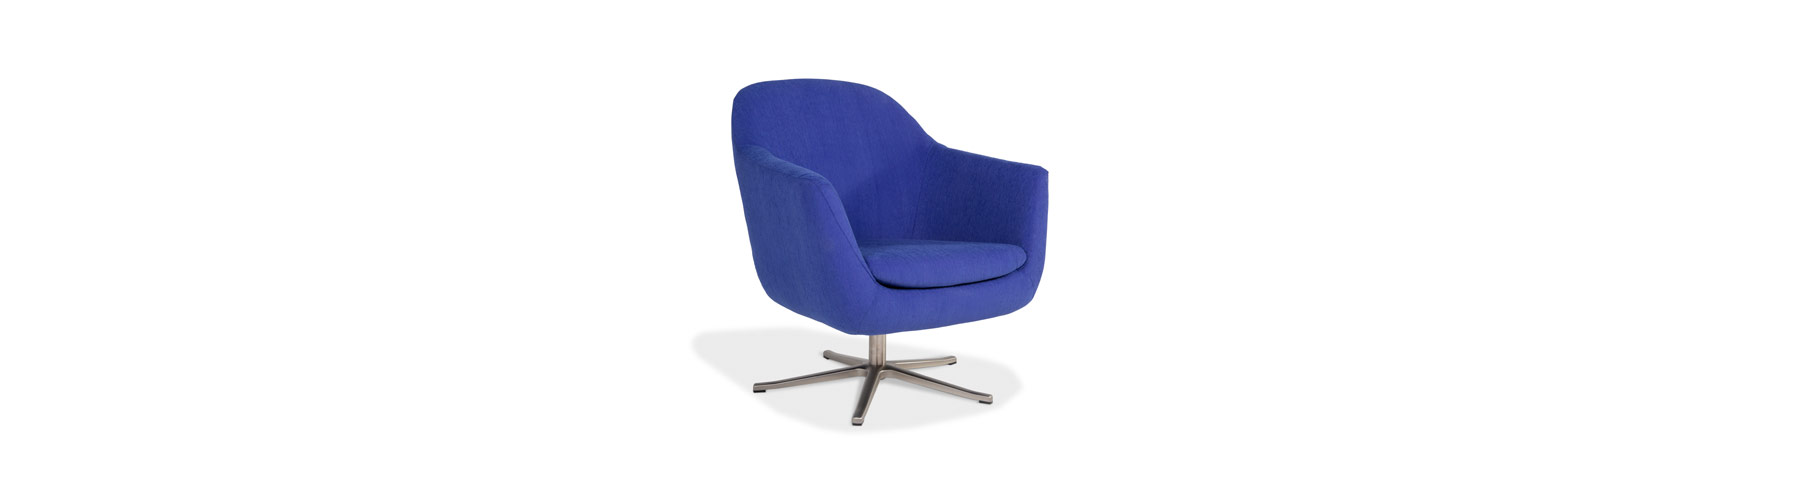 Zibo - Fauteuil William